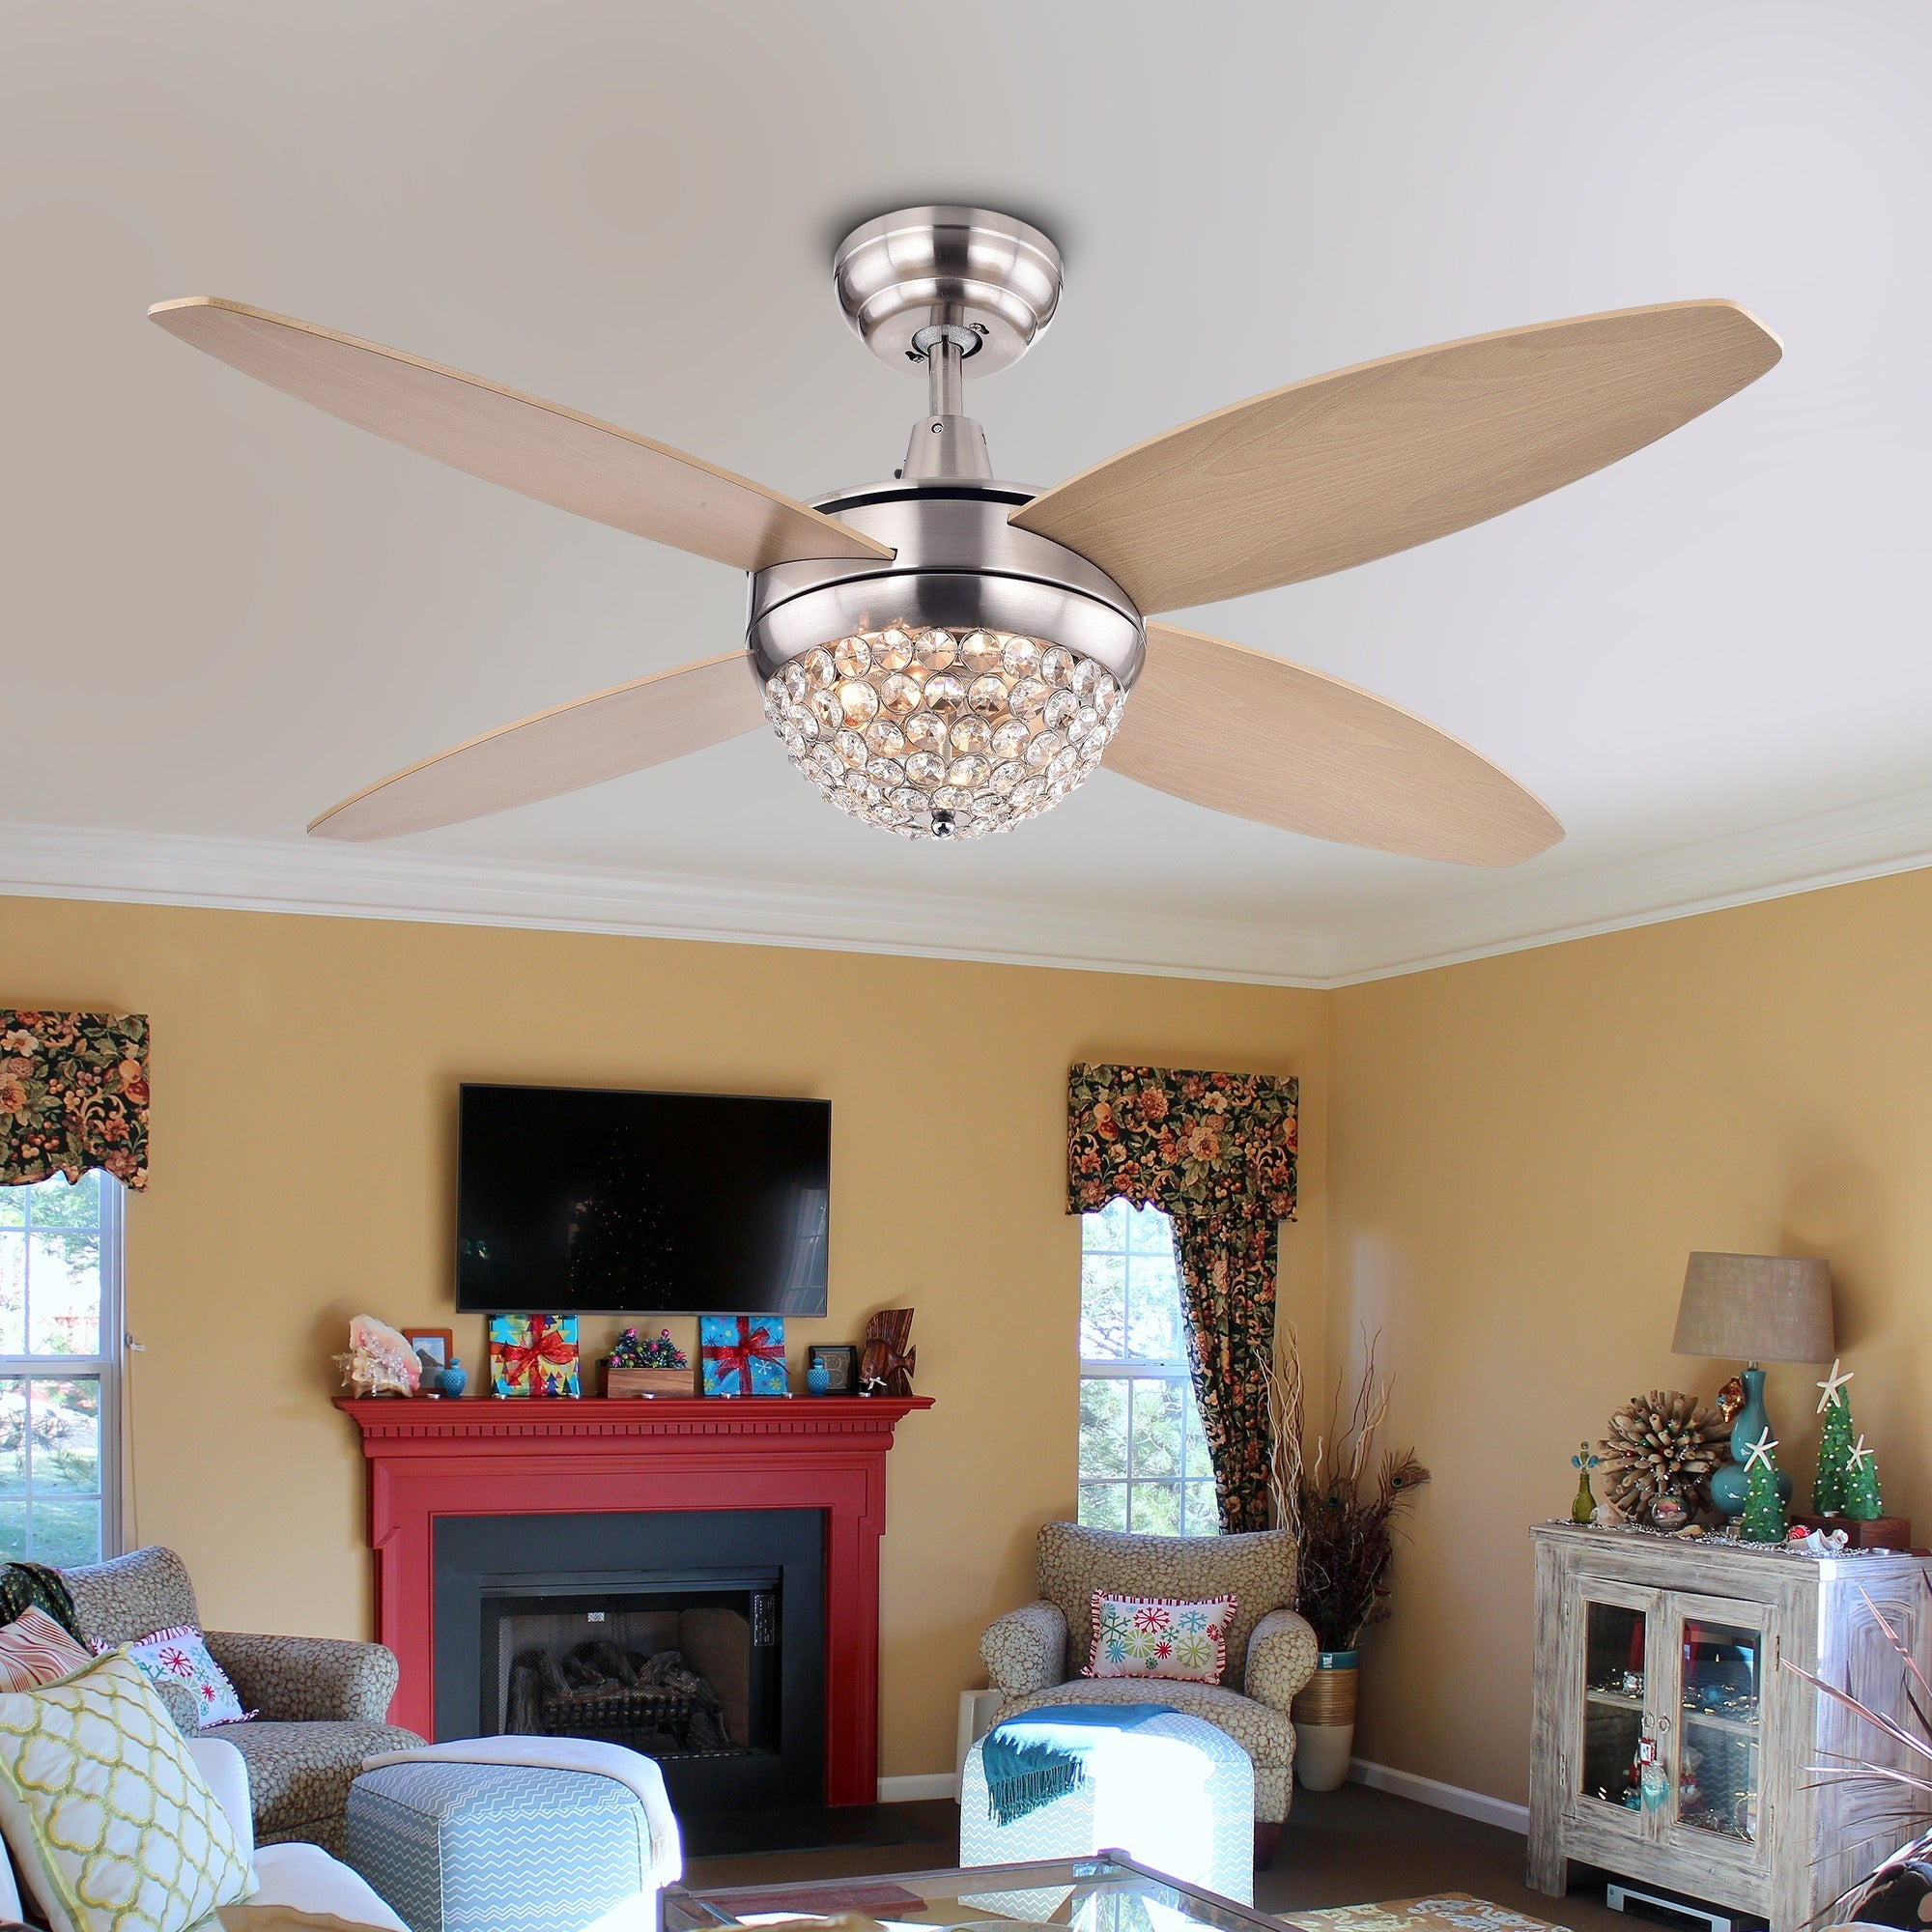 Balavis wood nickel crystal 2 light 4 blade 46 inch ceiling fan with balavis wood nickel crystal 2 light 4 blade 46 inch ceiling fan with remote free shipping today overstock 20843357 arubaitofo Choice Image